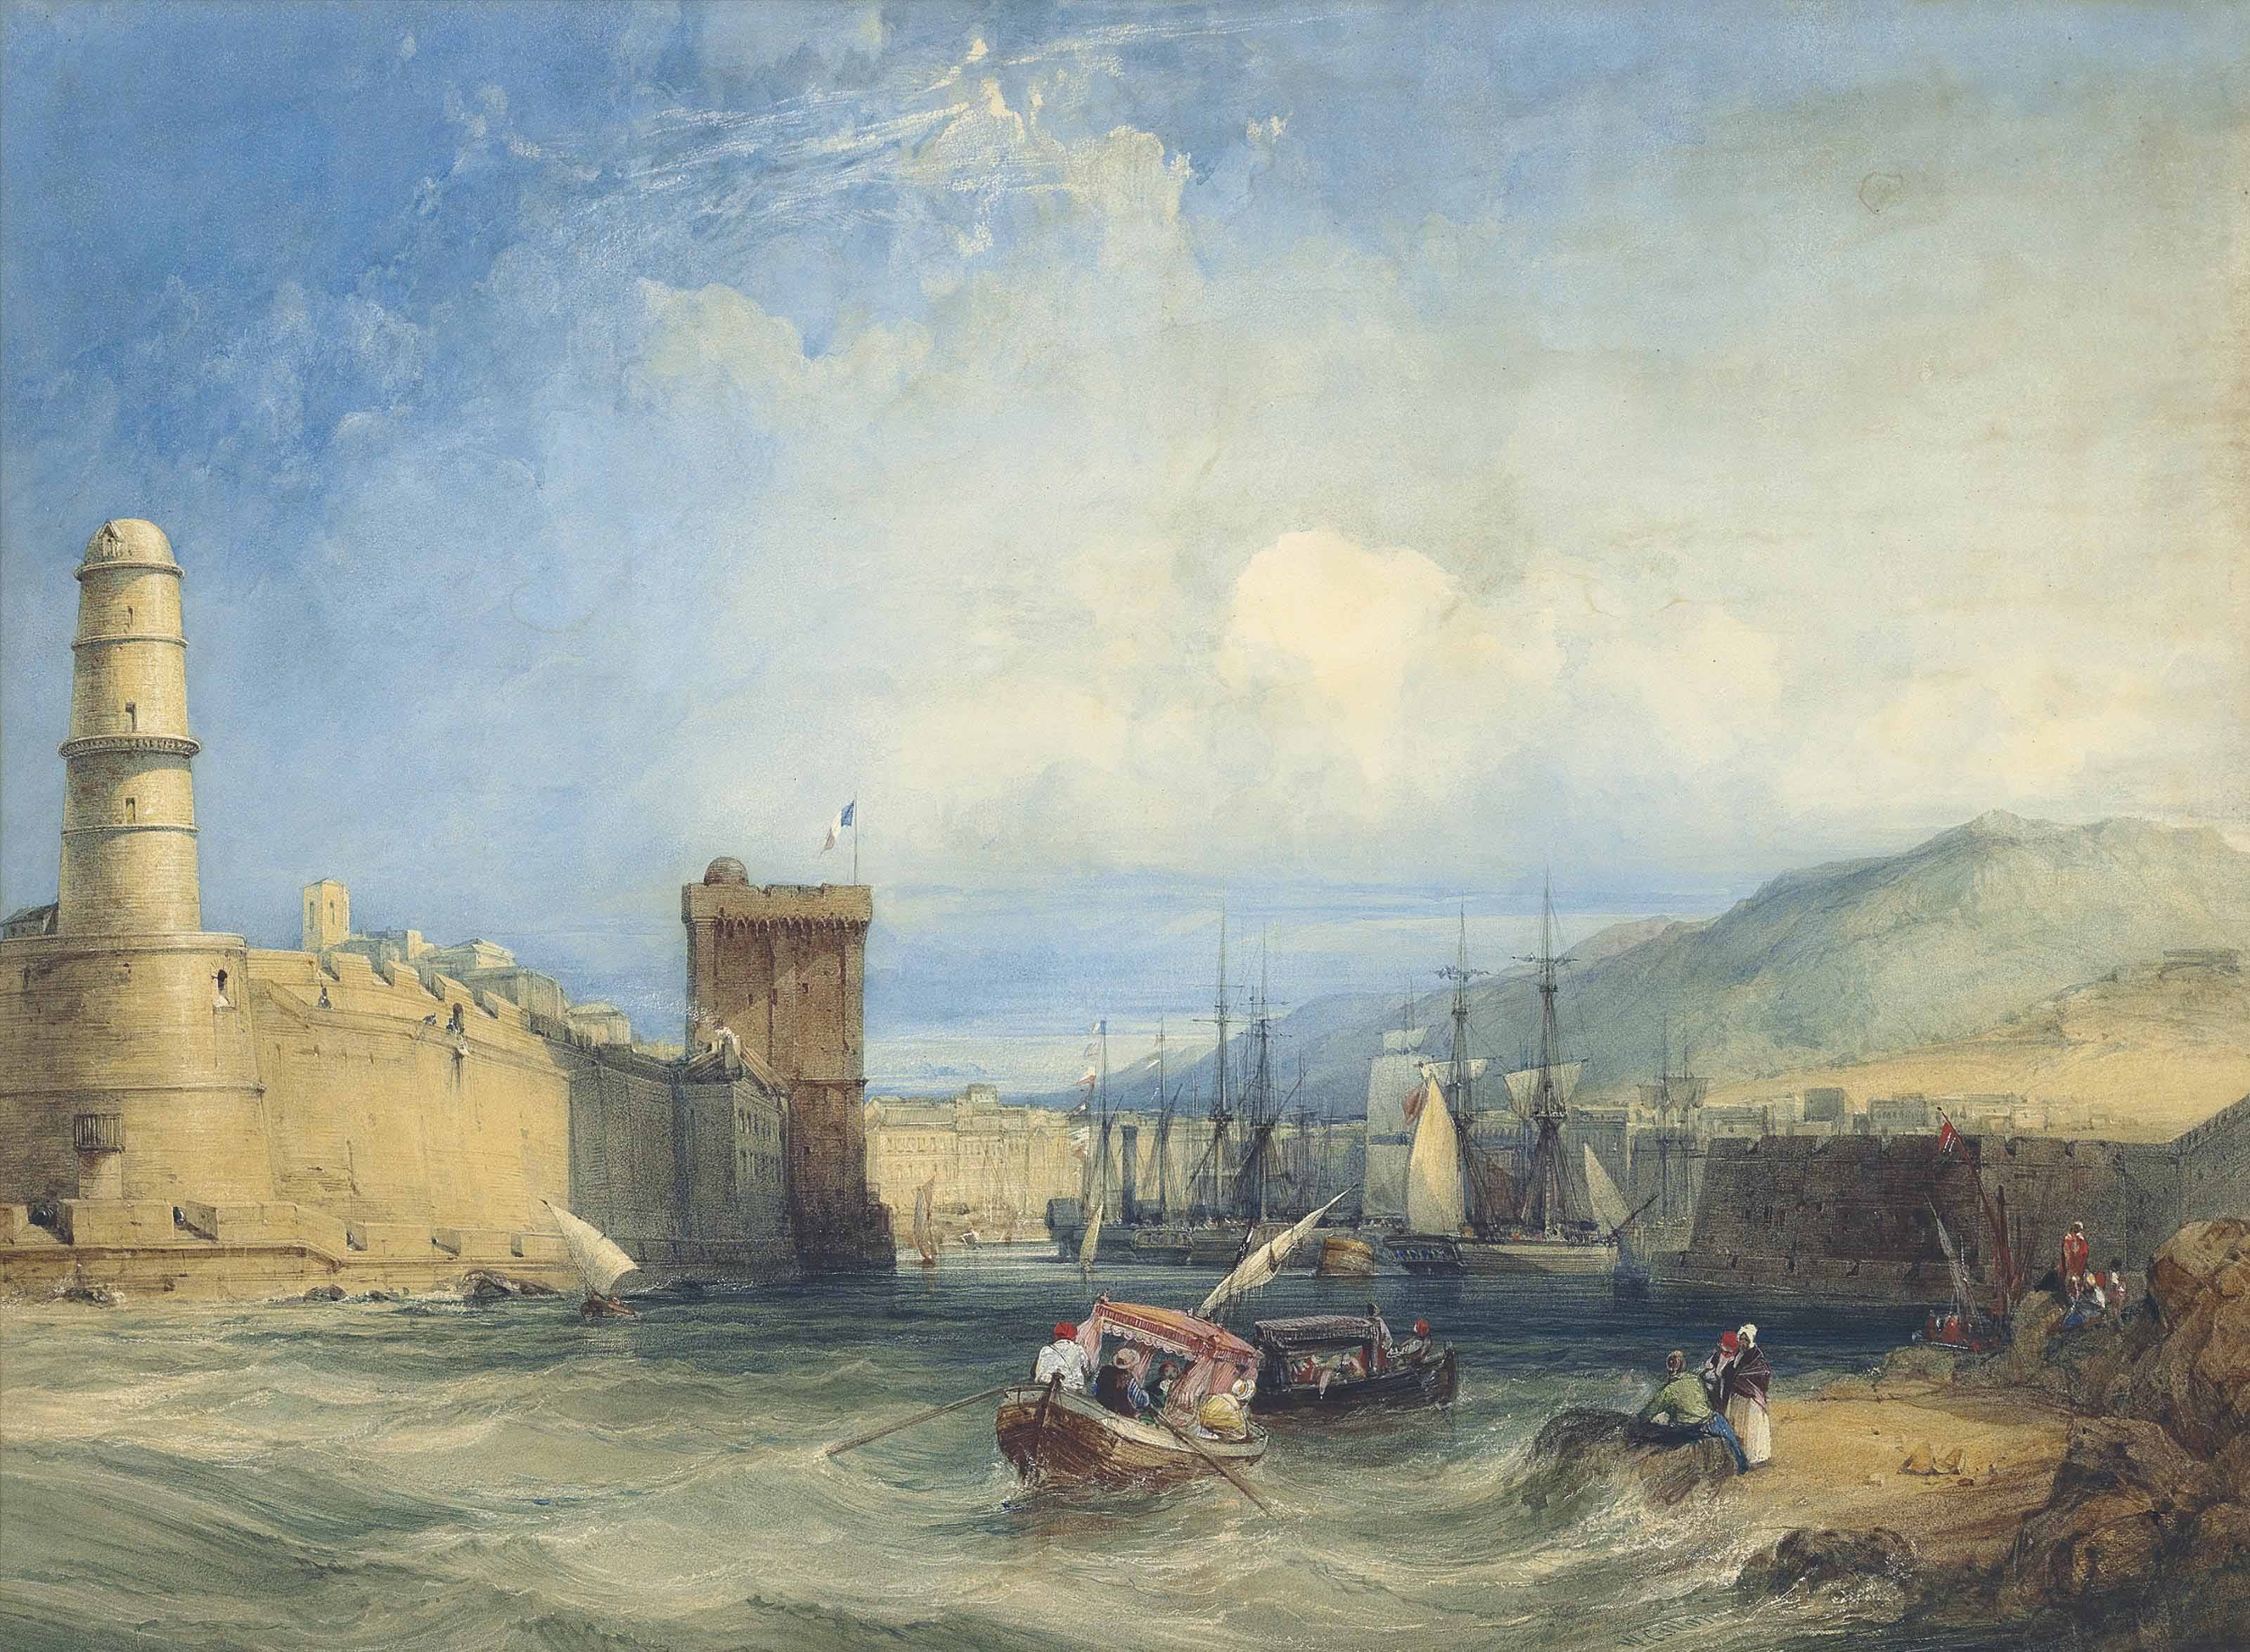 Entrance to the Port of Marseilles, France